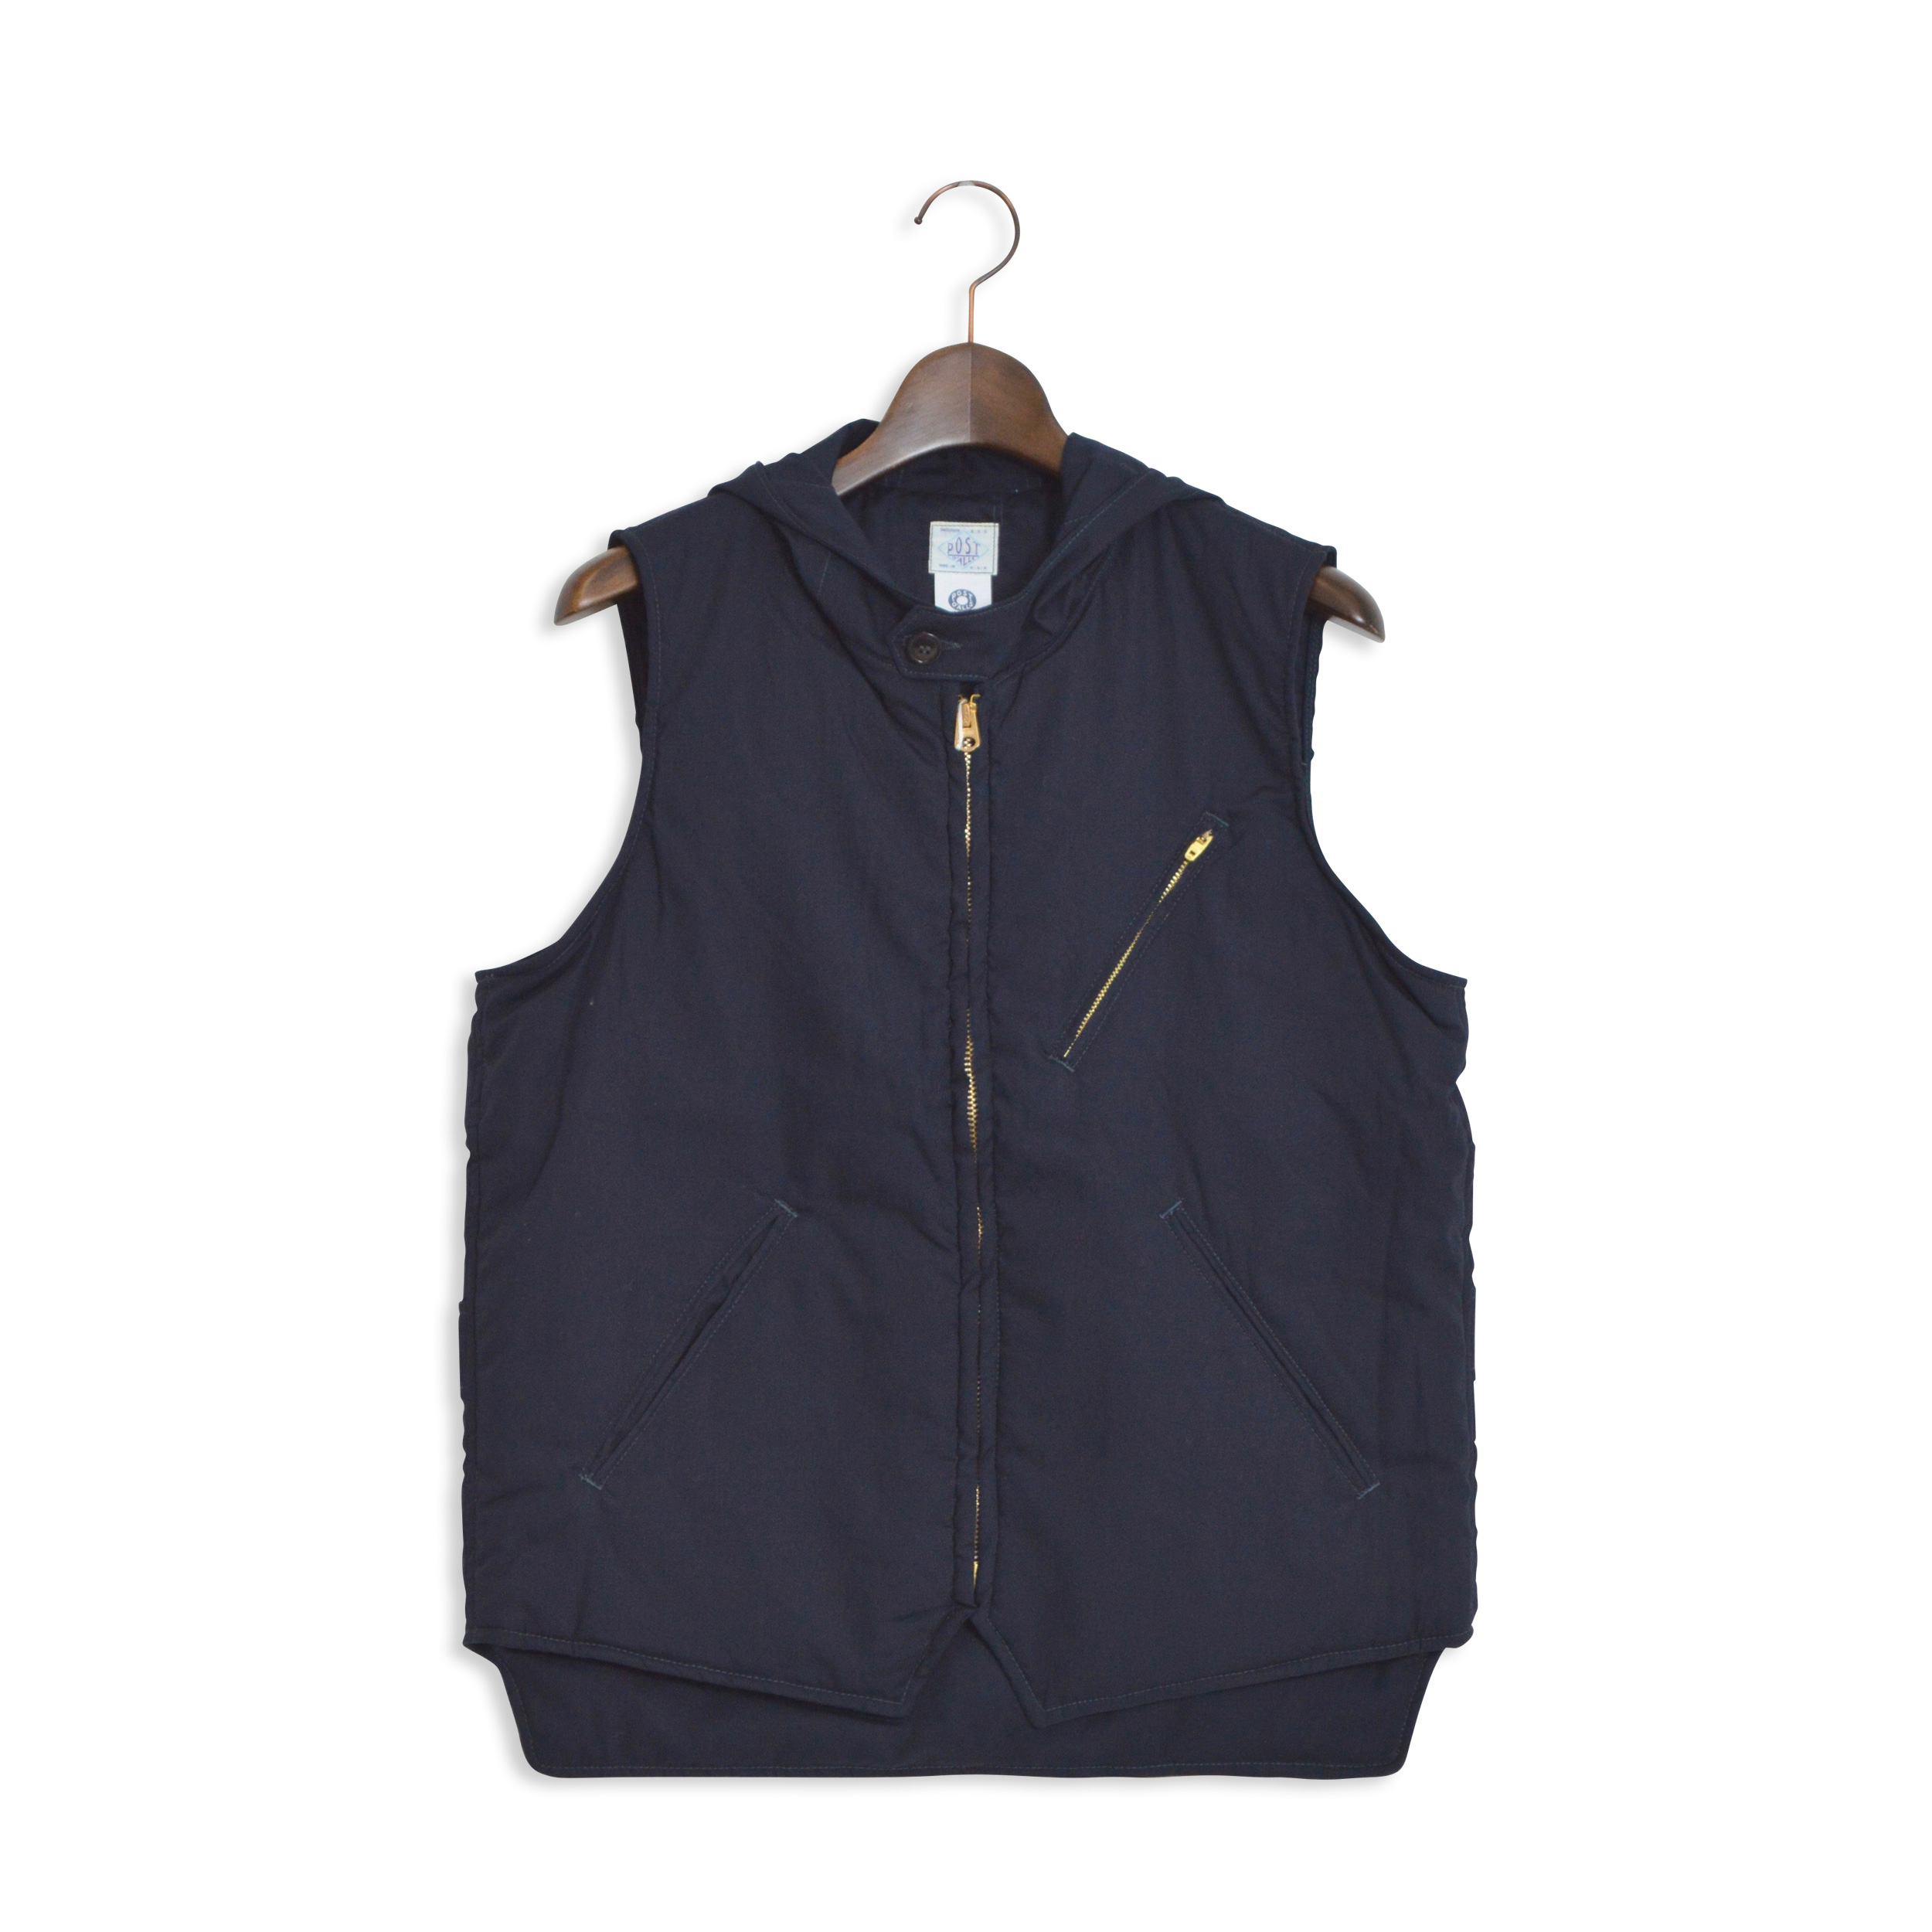 【35%OFF商品】【POST O'ALLS】POST OVERALLS(ポストオーバーオールズ)/1522h E-Z CRUZ VEST HOOD/COTTON BROADCLOTH (1703)